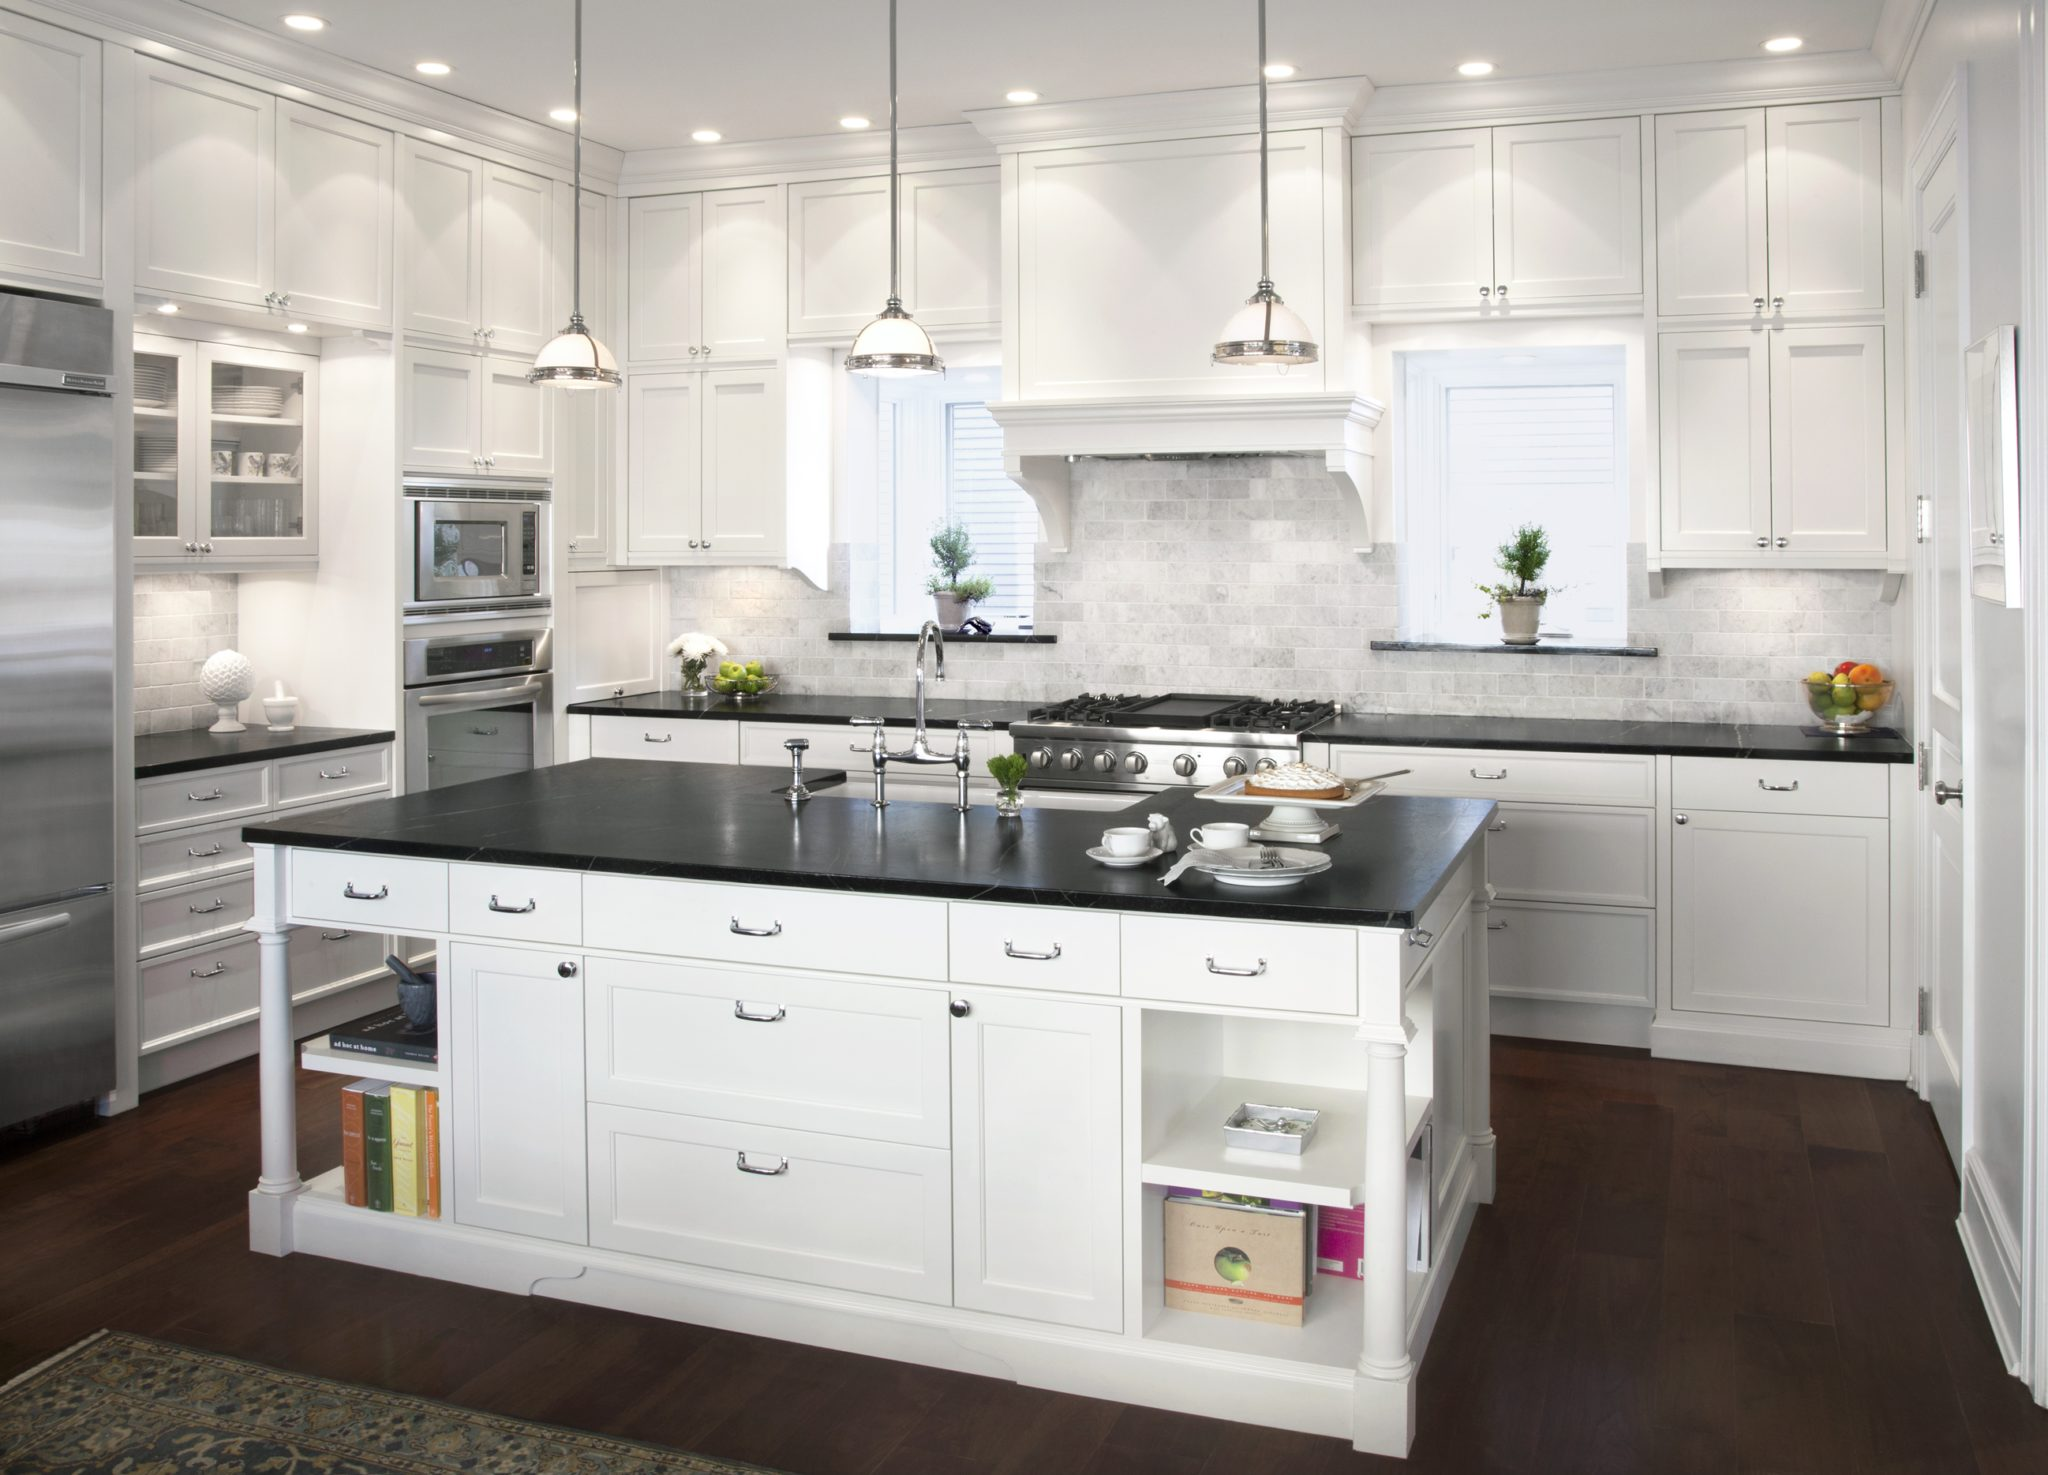 Traditional English kitchen with soapstone counters and marble backsplash by Randall Architects, Inc.